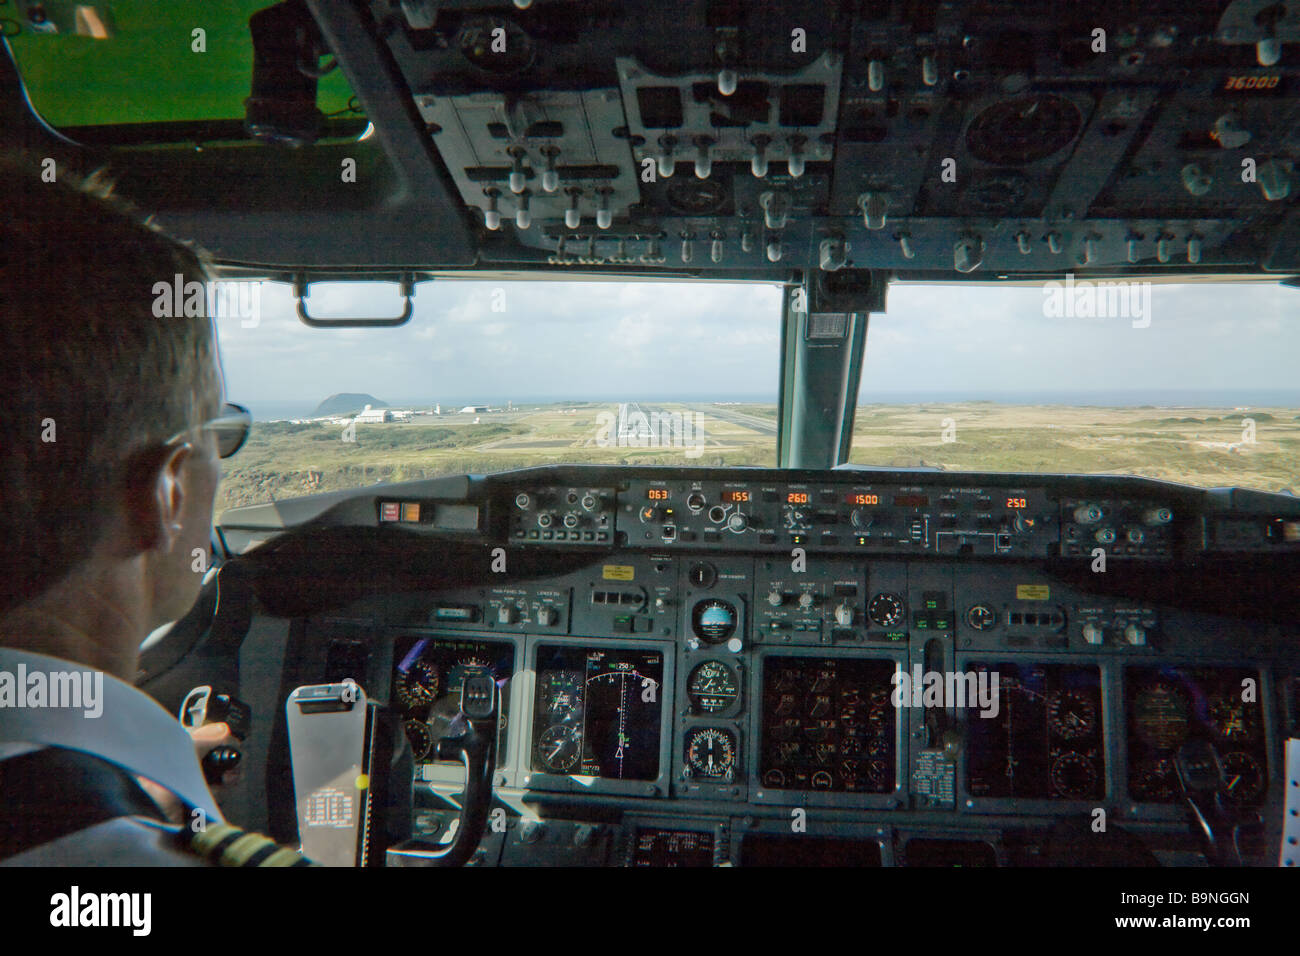 In the cockpit of a 737 aircraft on final approach to Iwo Jima airport - Stock Image